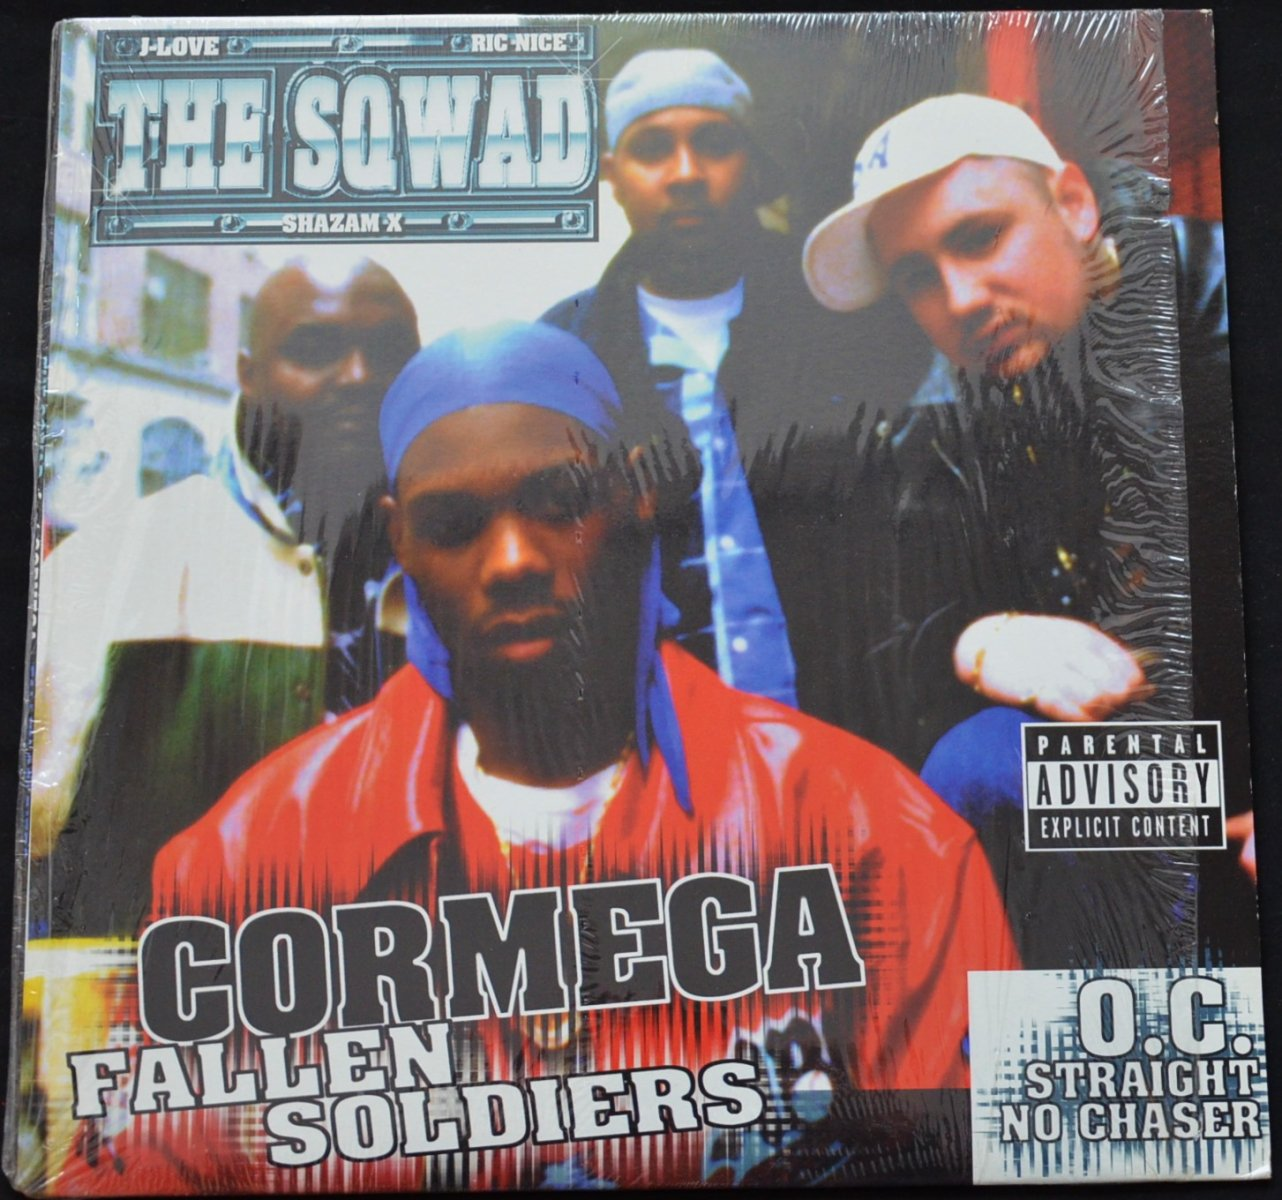 THE SQWAD / FALLEN SOLDIERS (FEAT.CORMEGA) / STRAIGHT NO CHASER (FEAT.O.C.) (12